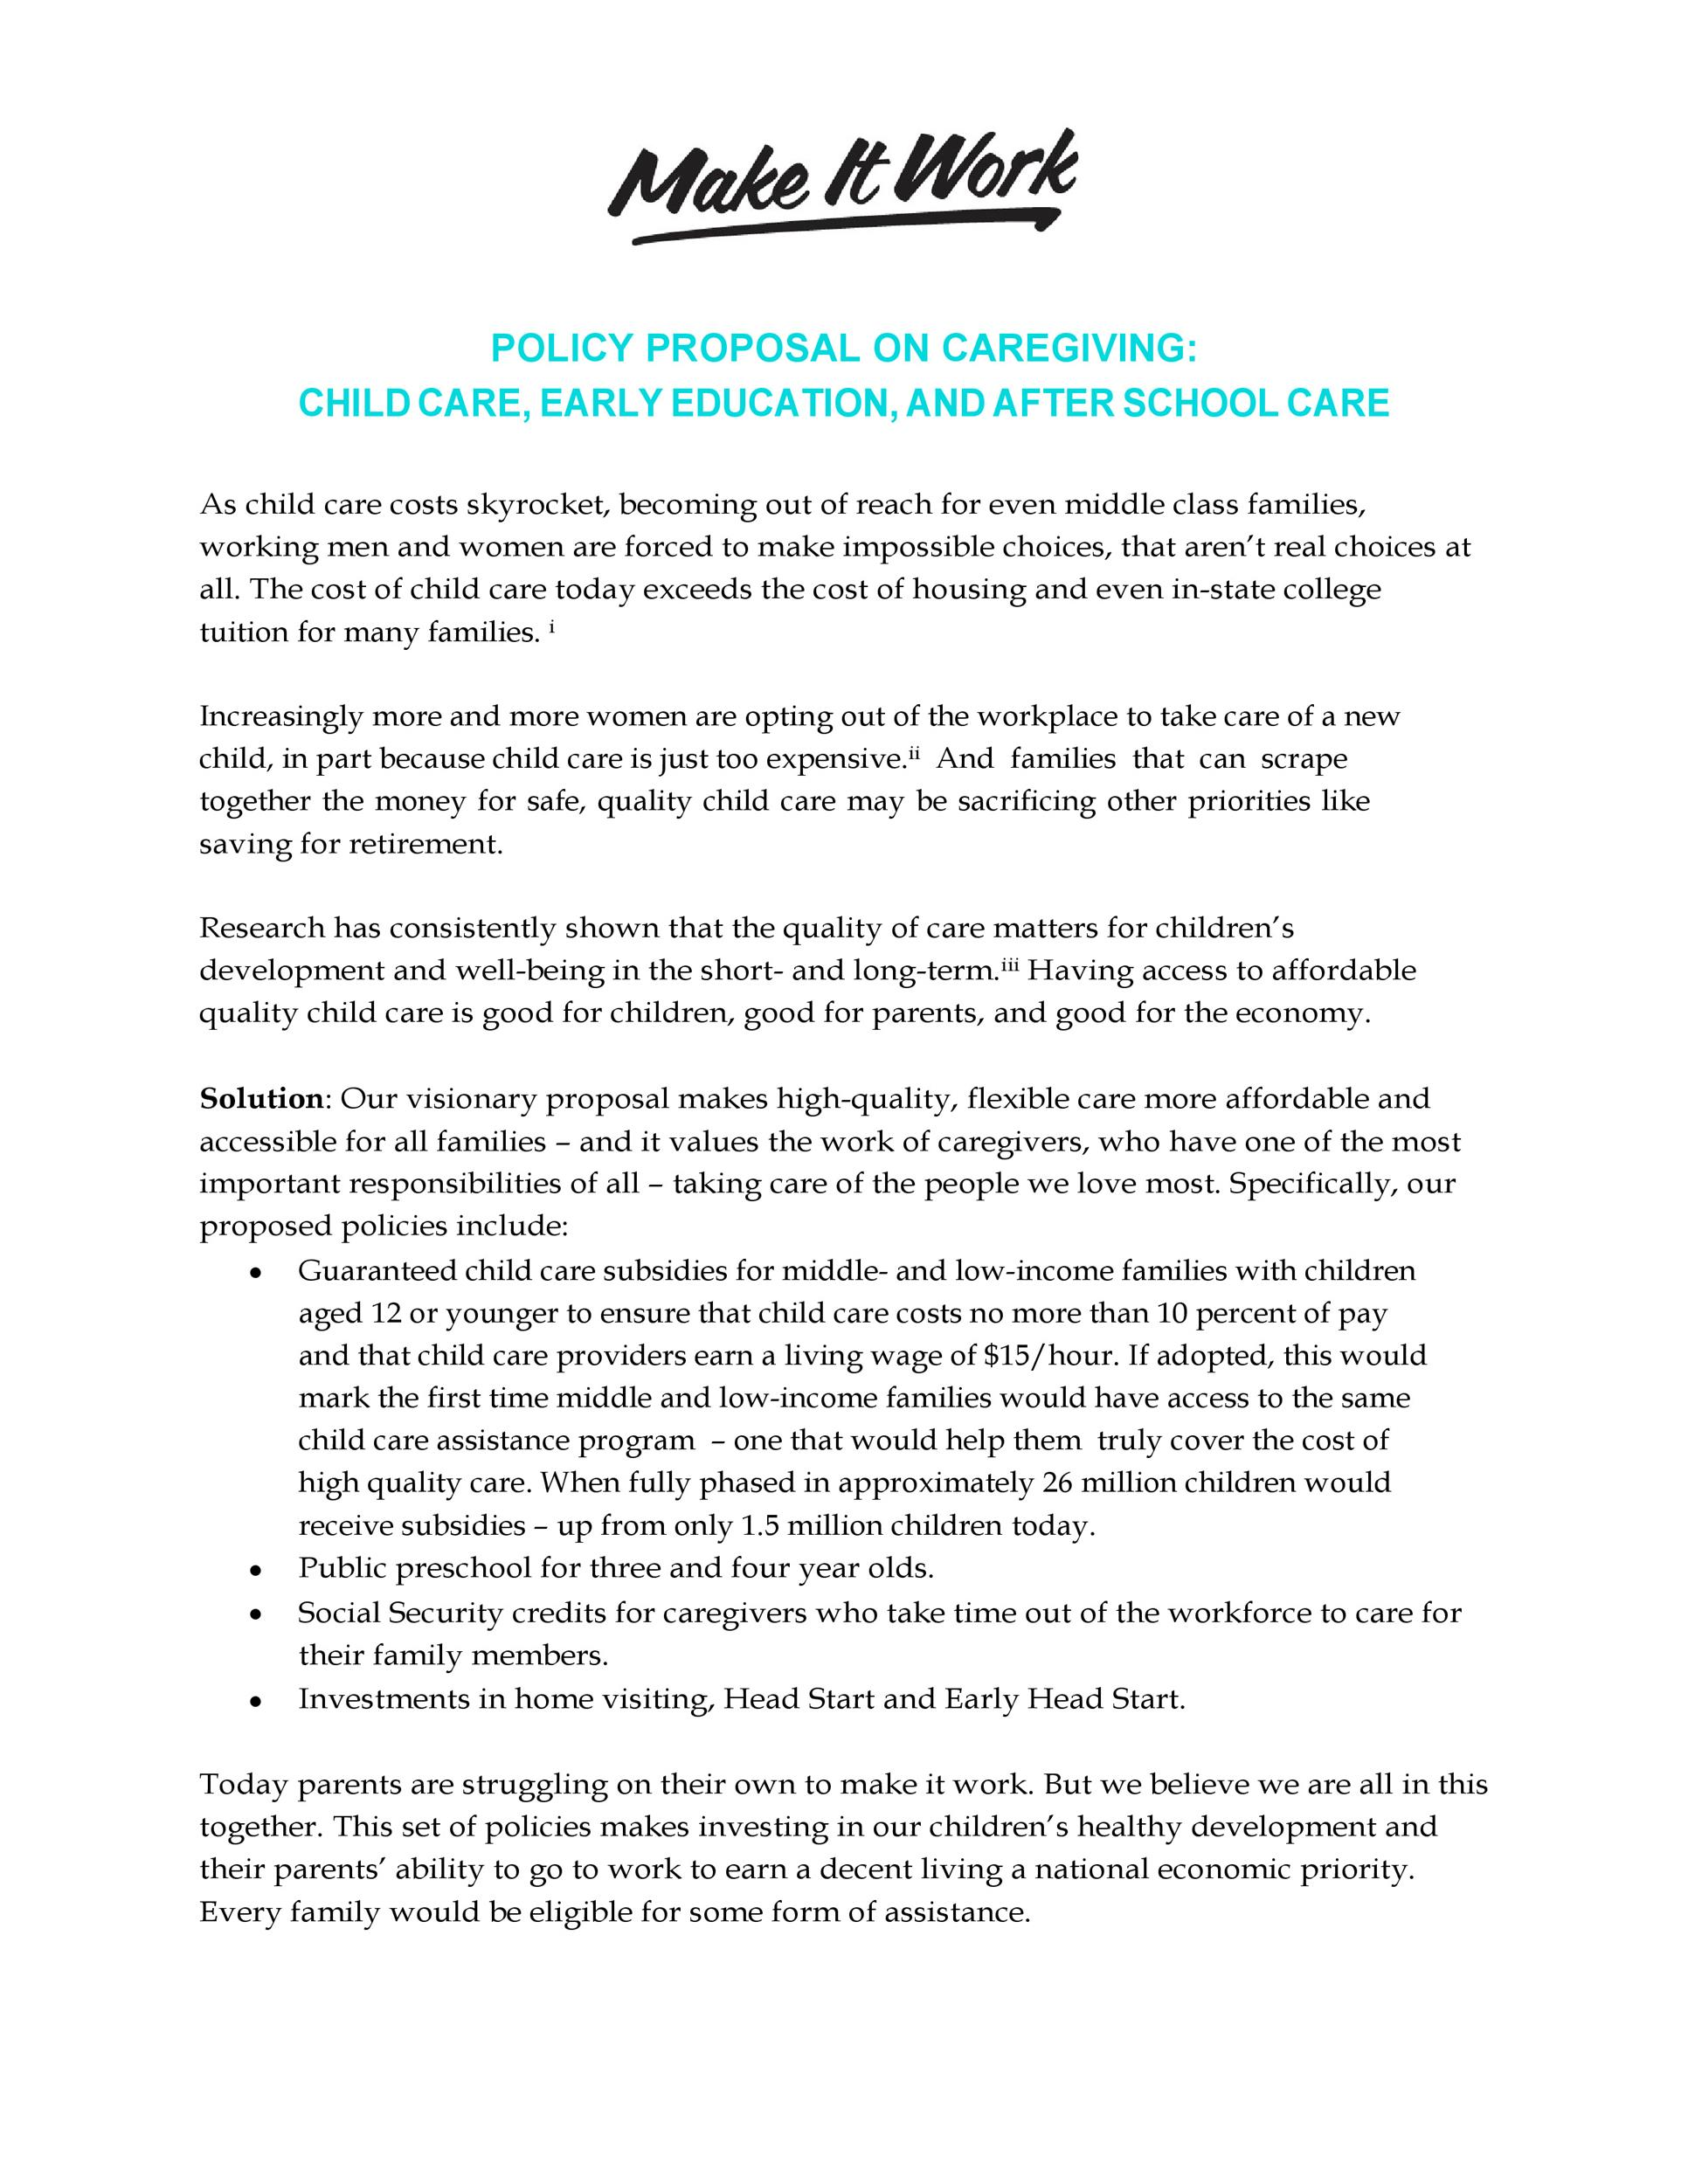 Free policy proposal template 26